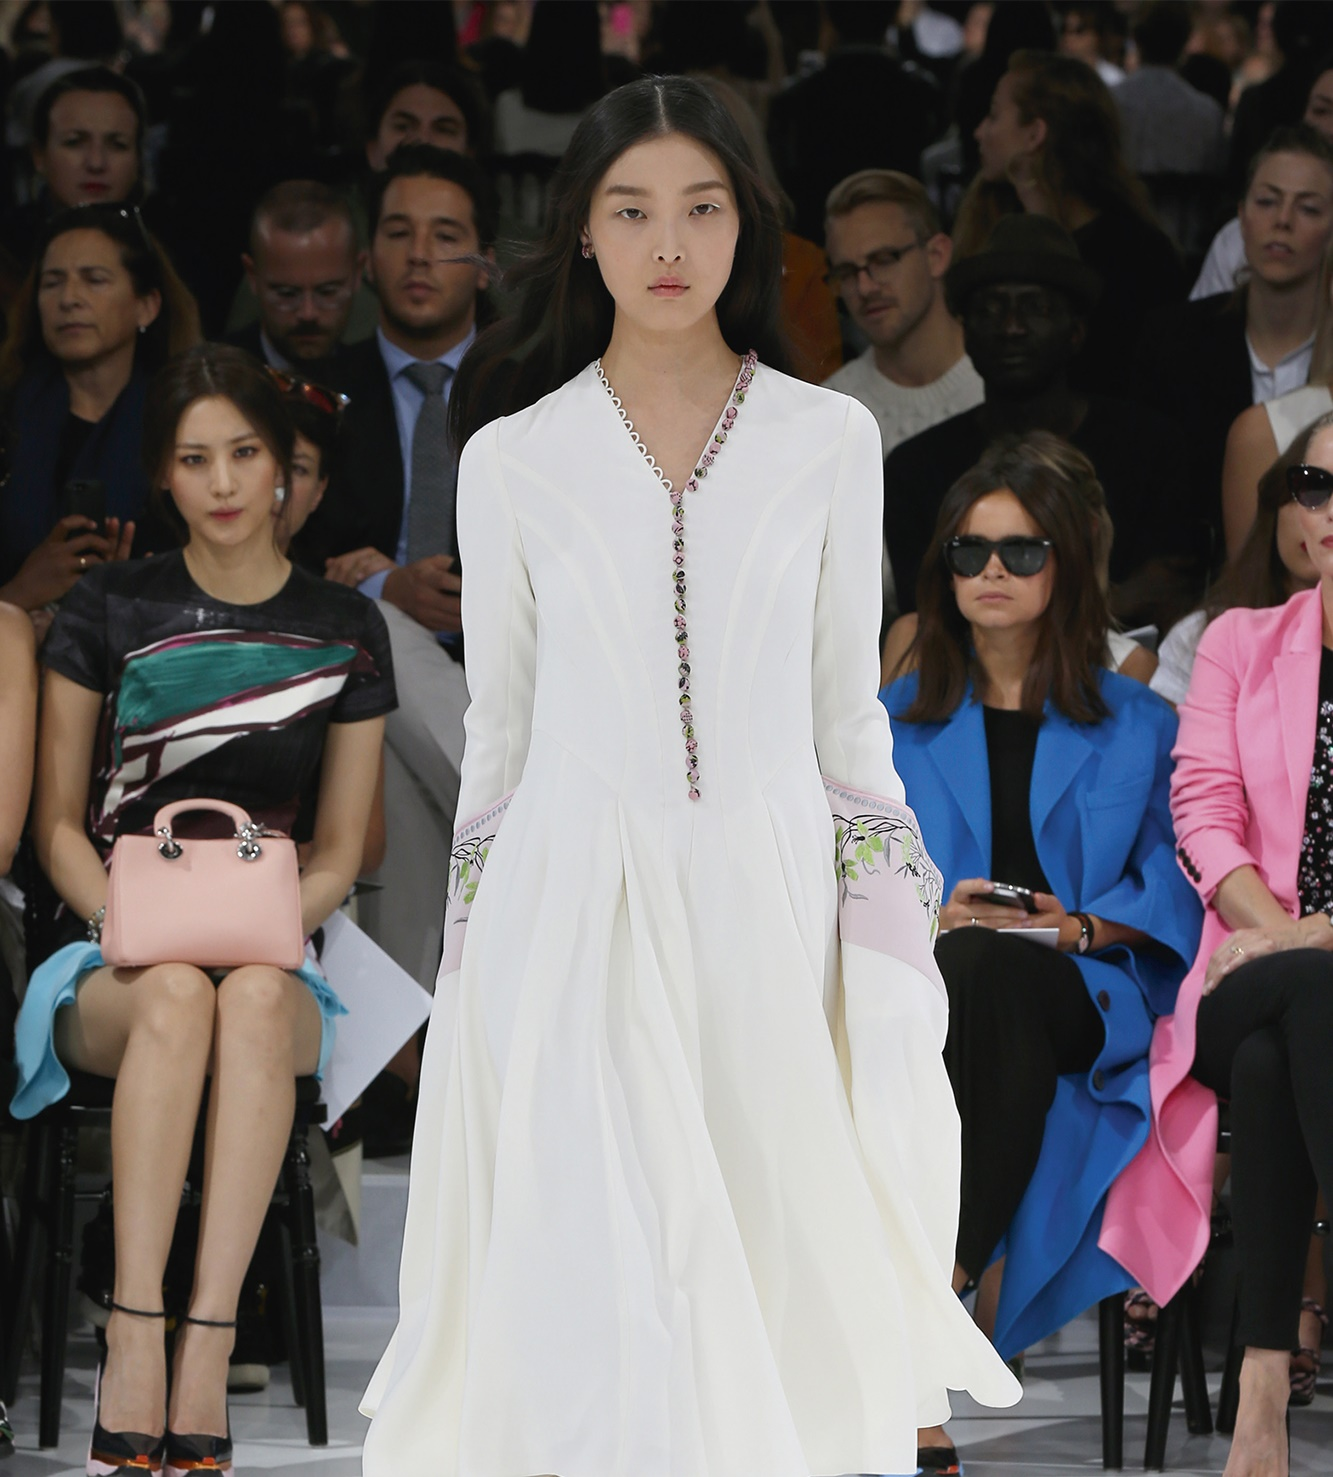 christian-dior-spring-summer-RTW-collection (17)